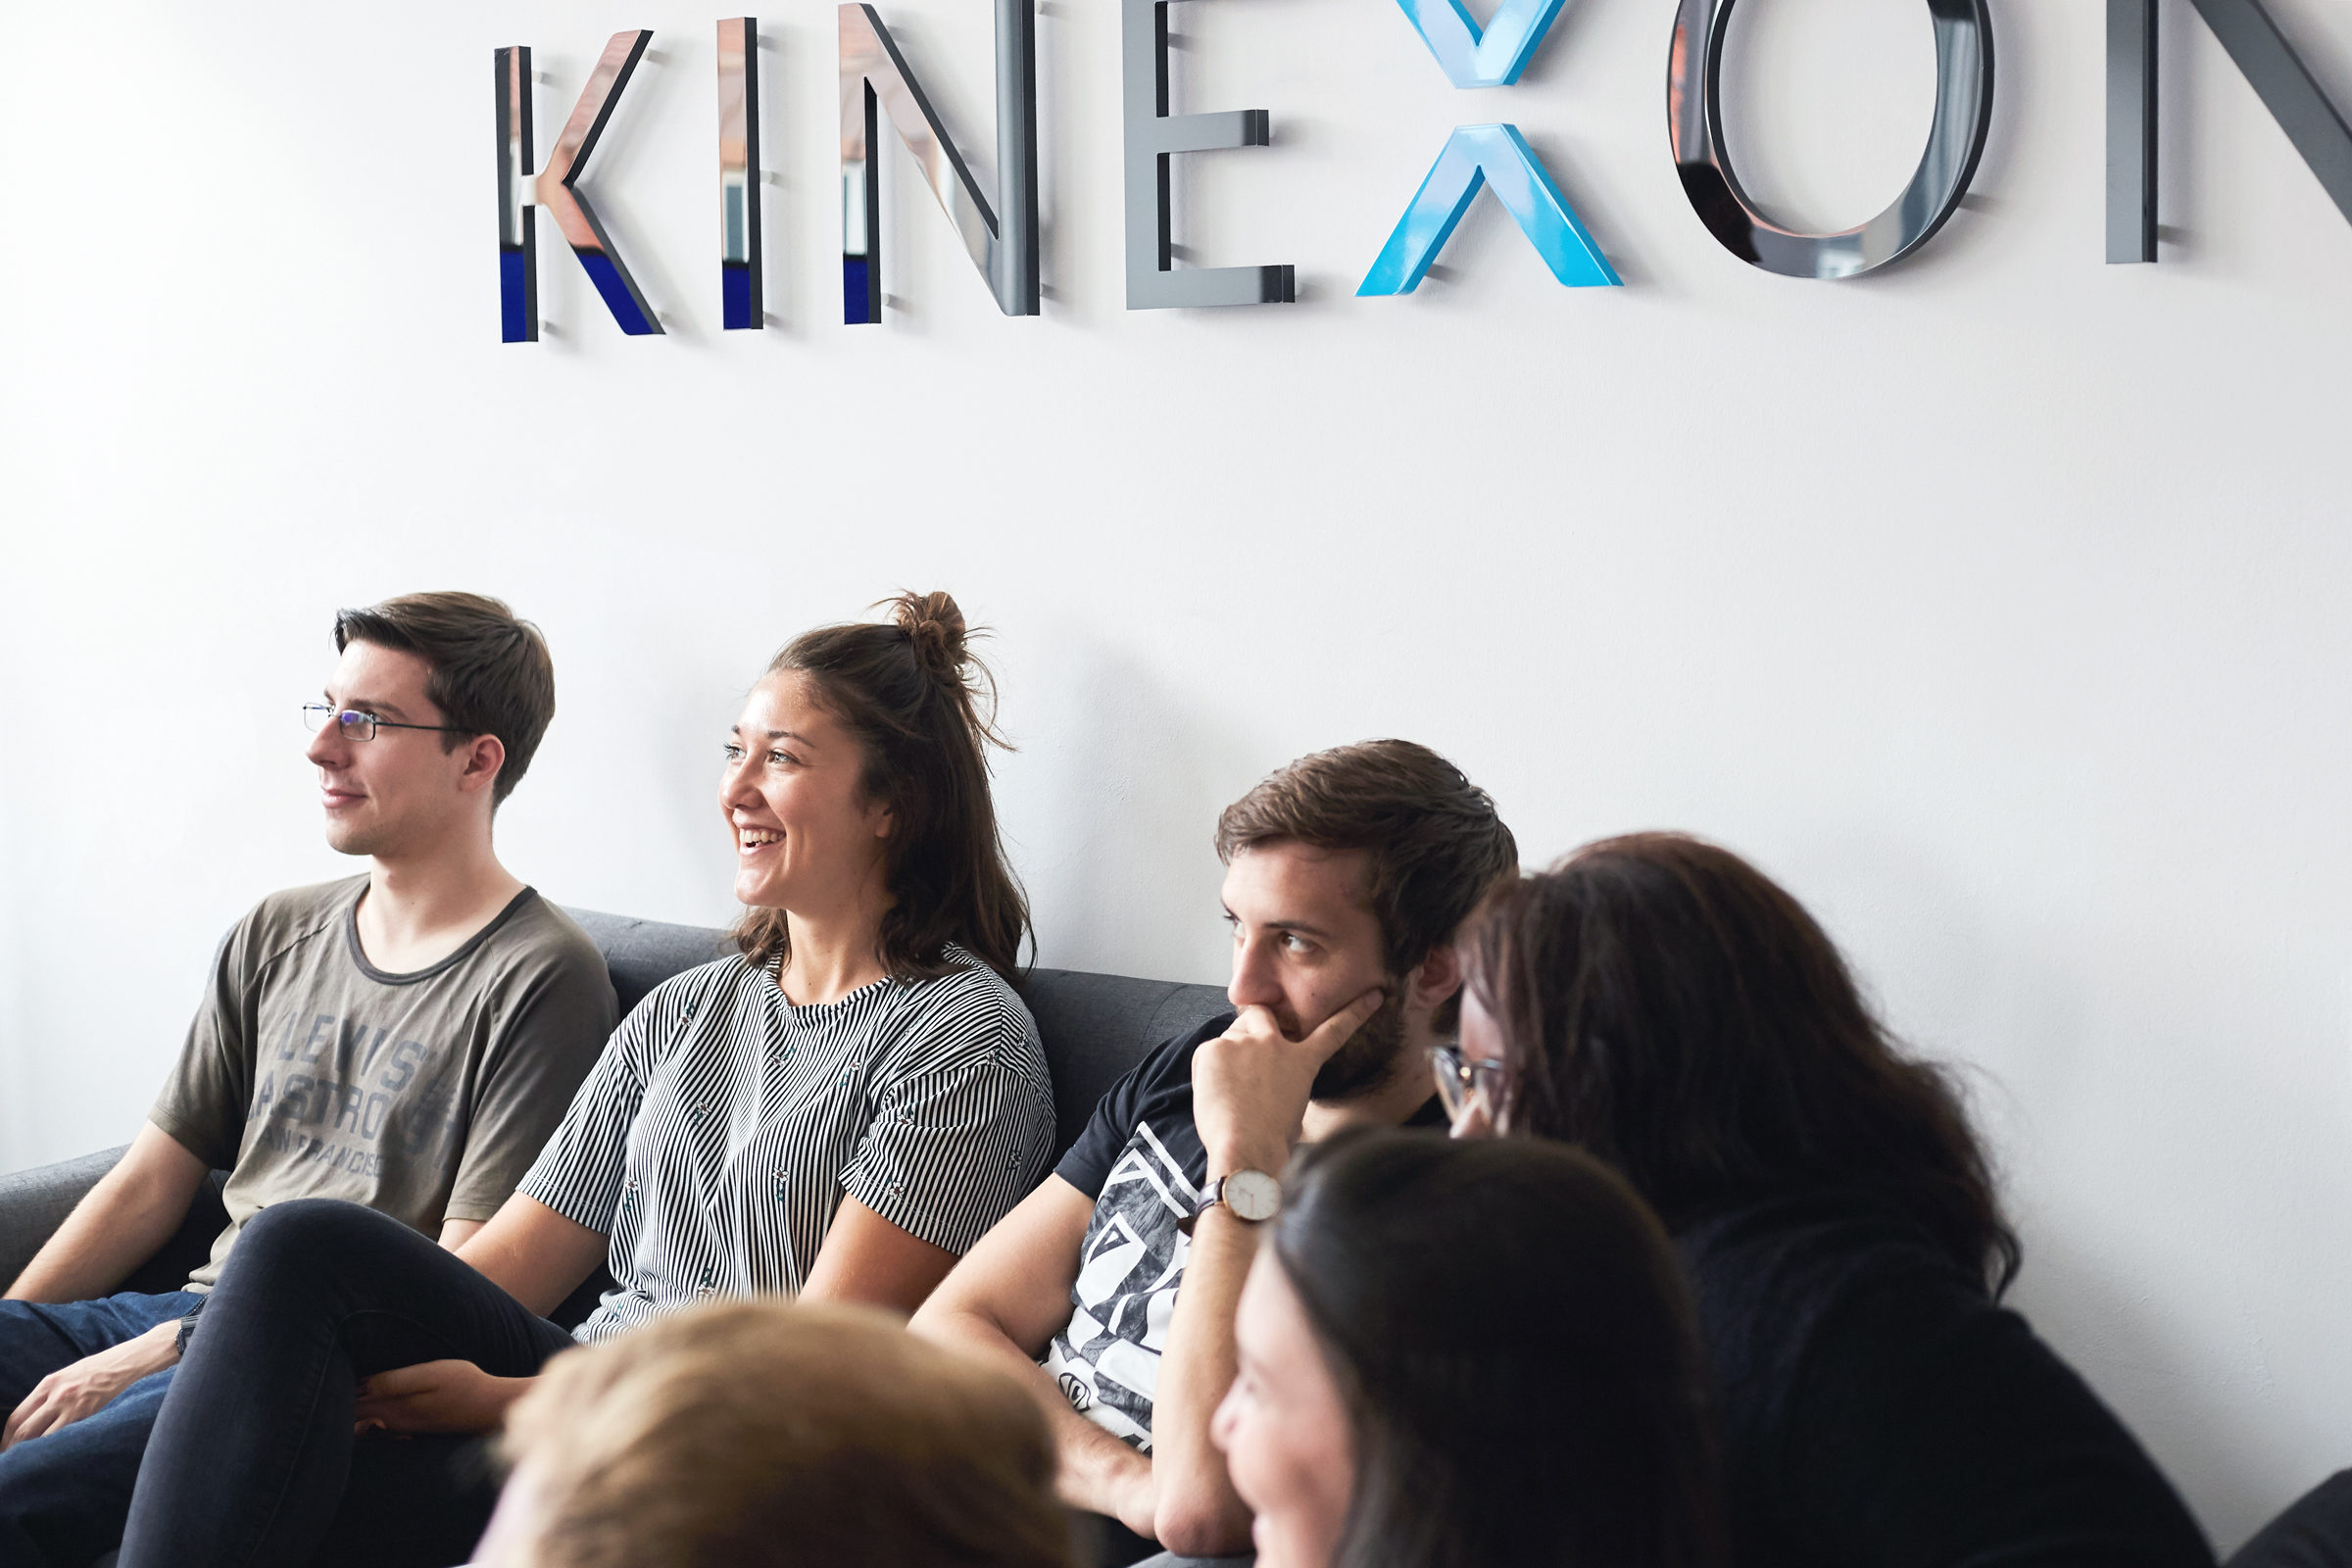 Employees sitting on the couch in front of the KINEXON logo